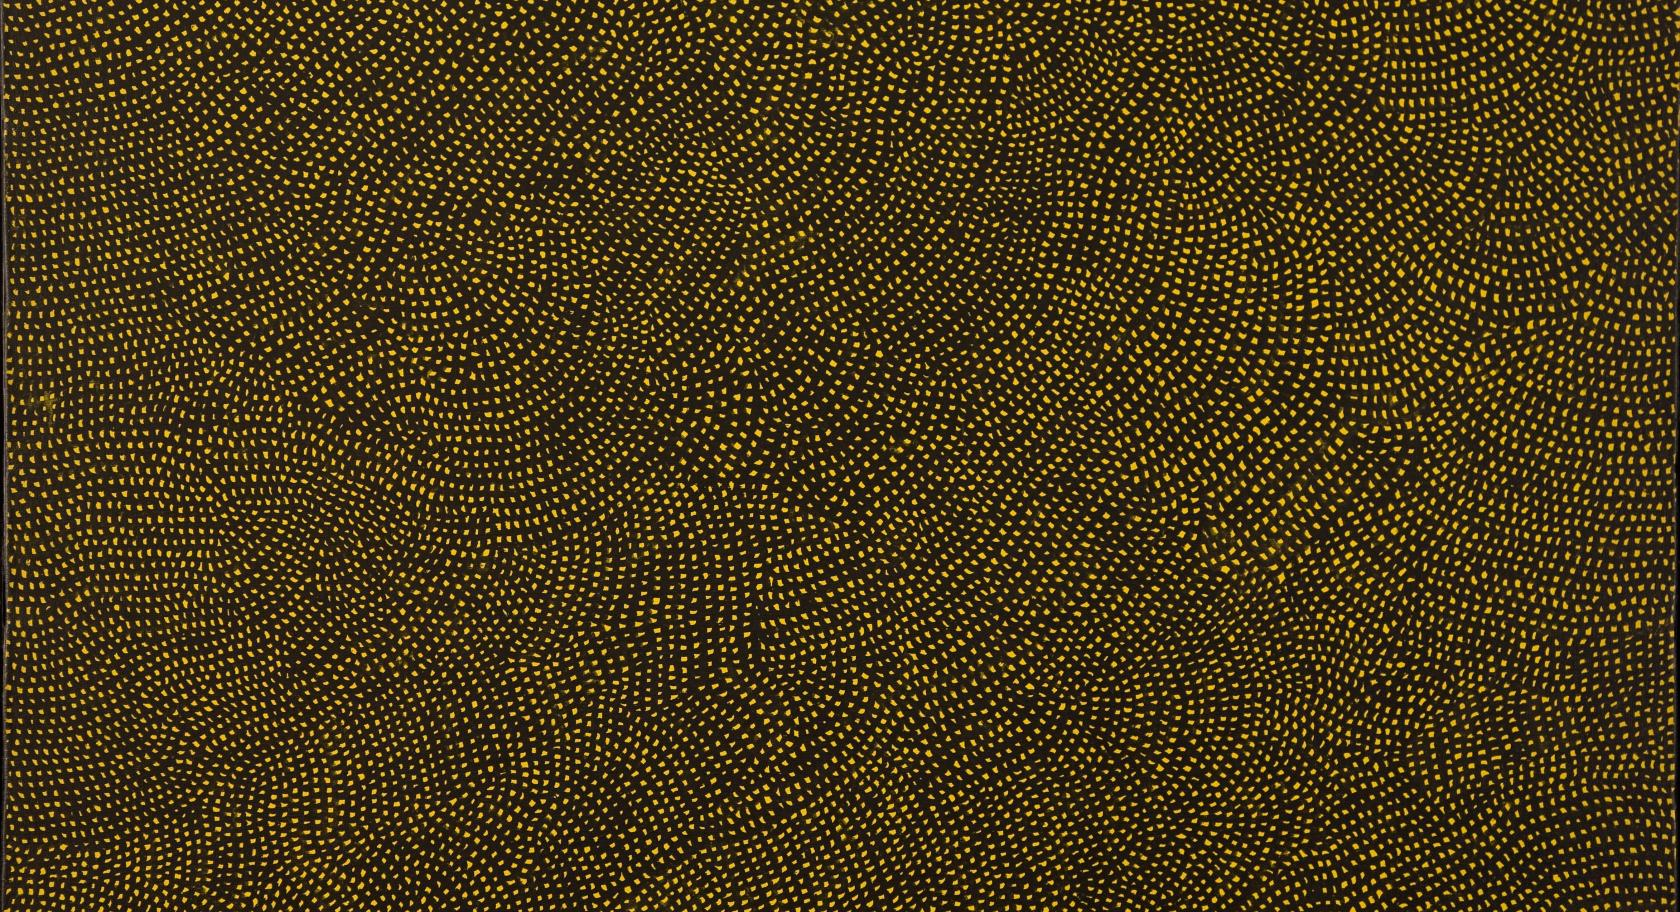 Yayoi Kusama (Japanese, b. 1929) Infinity Nets, 1959, acrylic on canvas, 28 5/8 x 35 ¾ inches, purchased with funds from The Phyllis Cannon Wattis Endowment Fund, UMFA2011.2.2